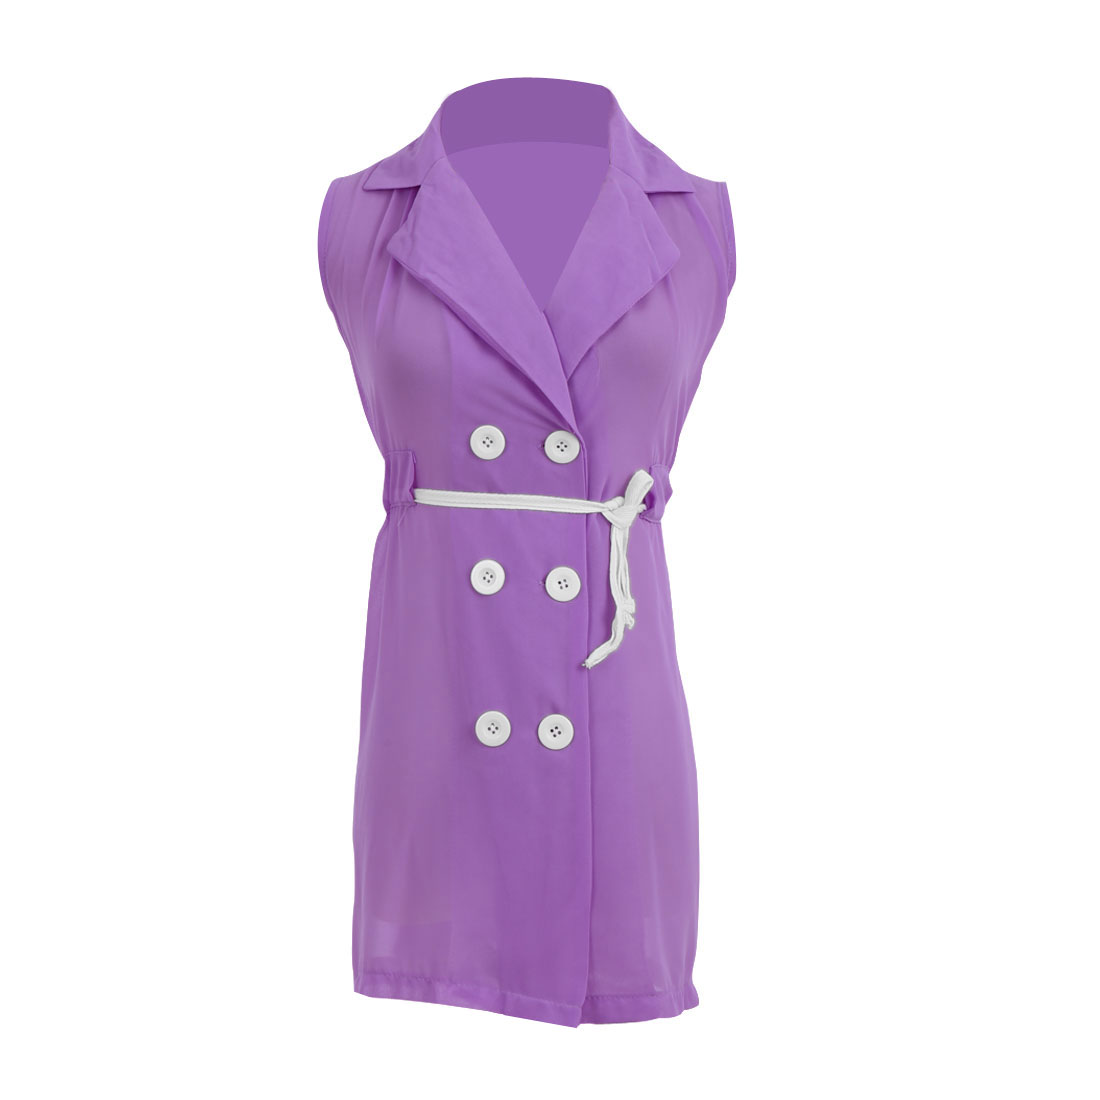 Lady Solid Color Buttons Upper Sleeveless Trench Vests Lavender S